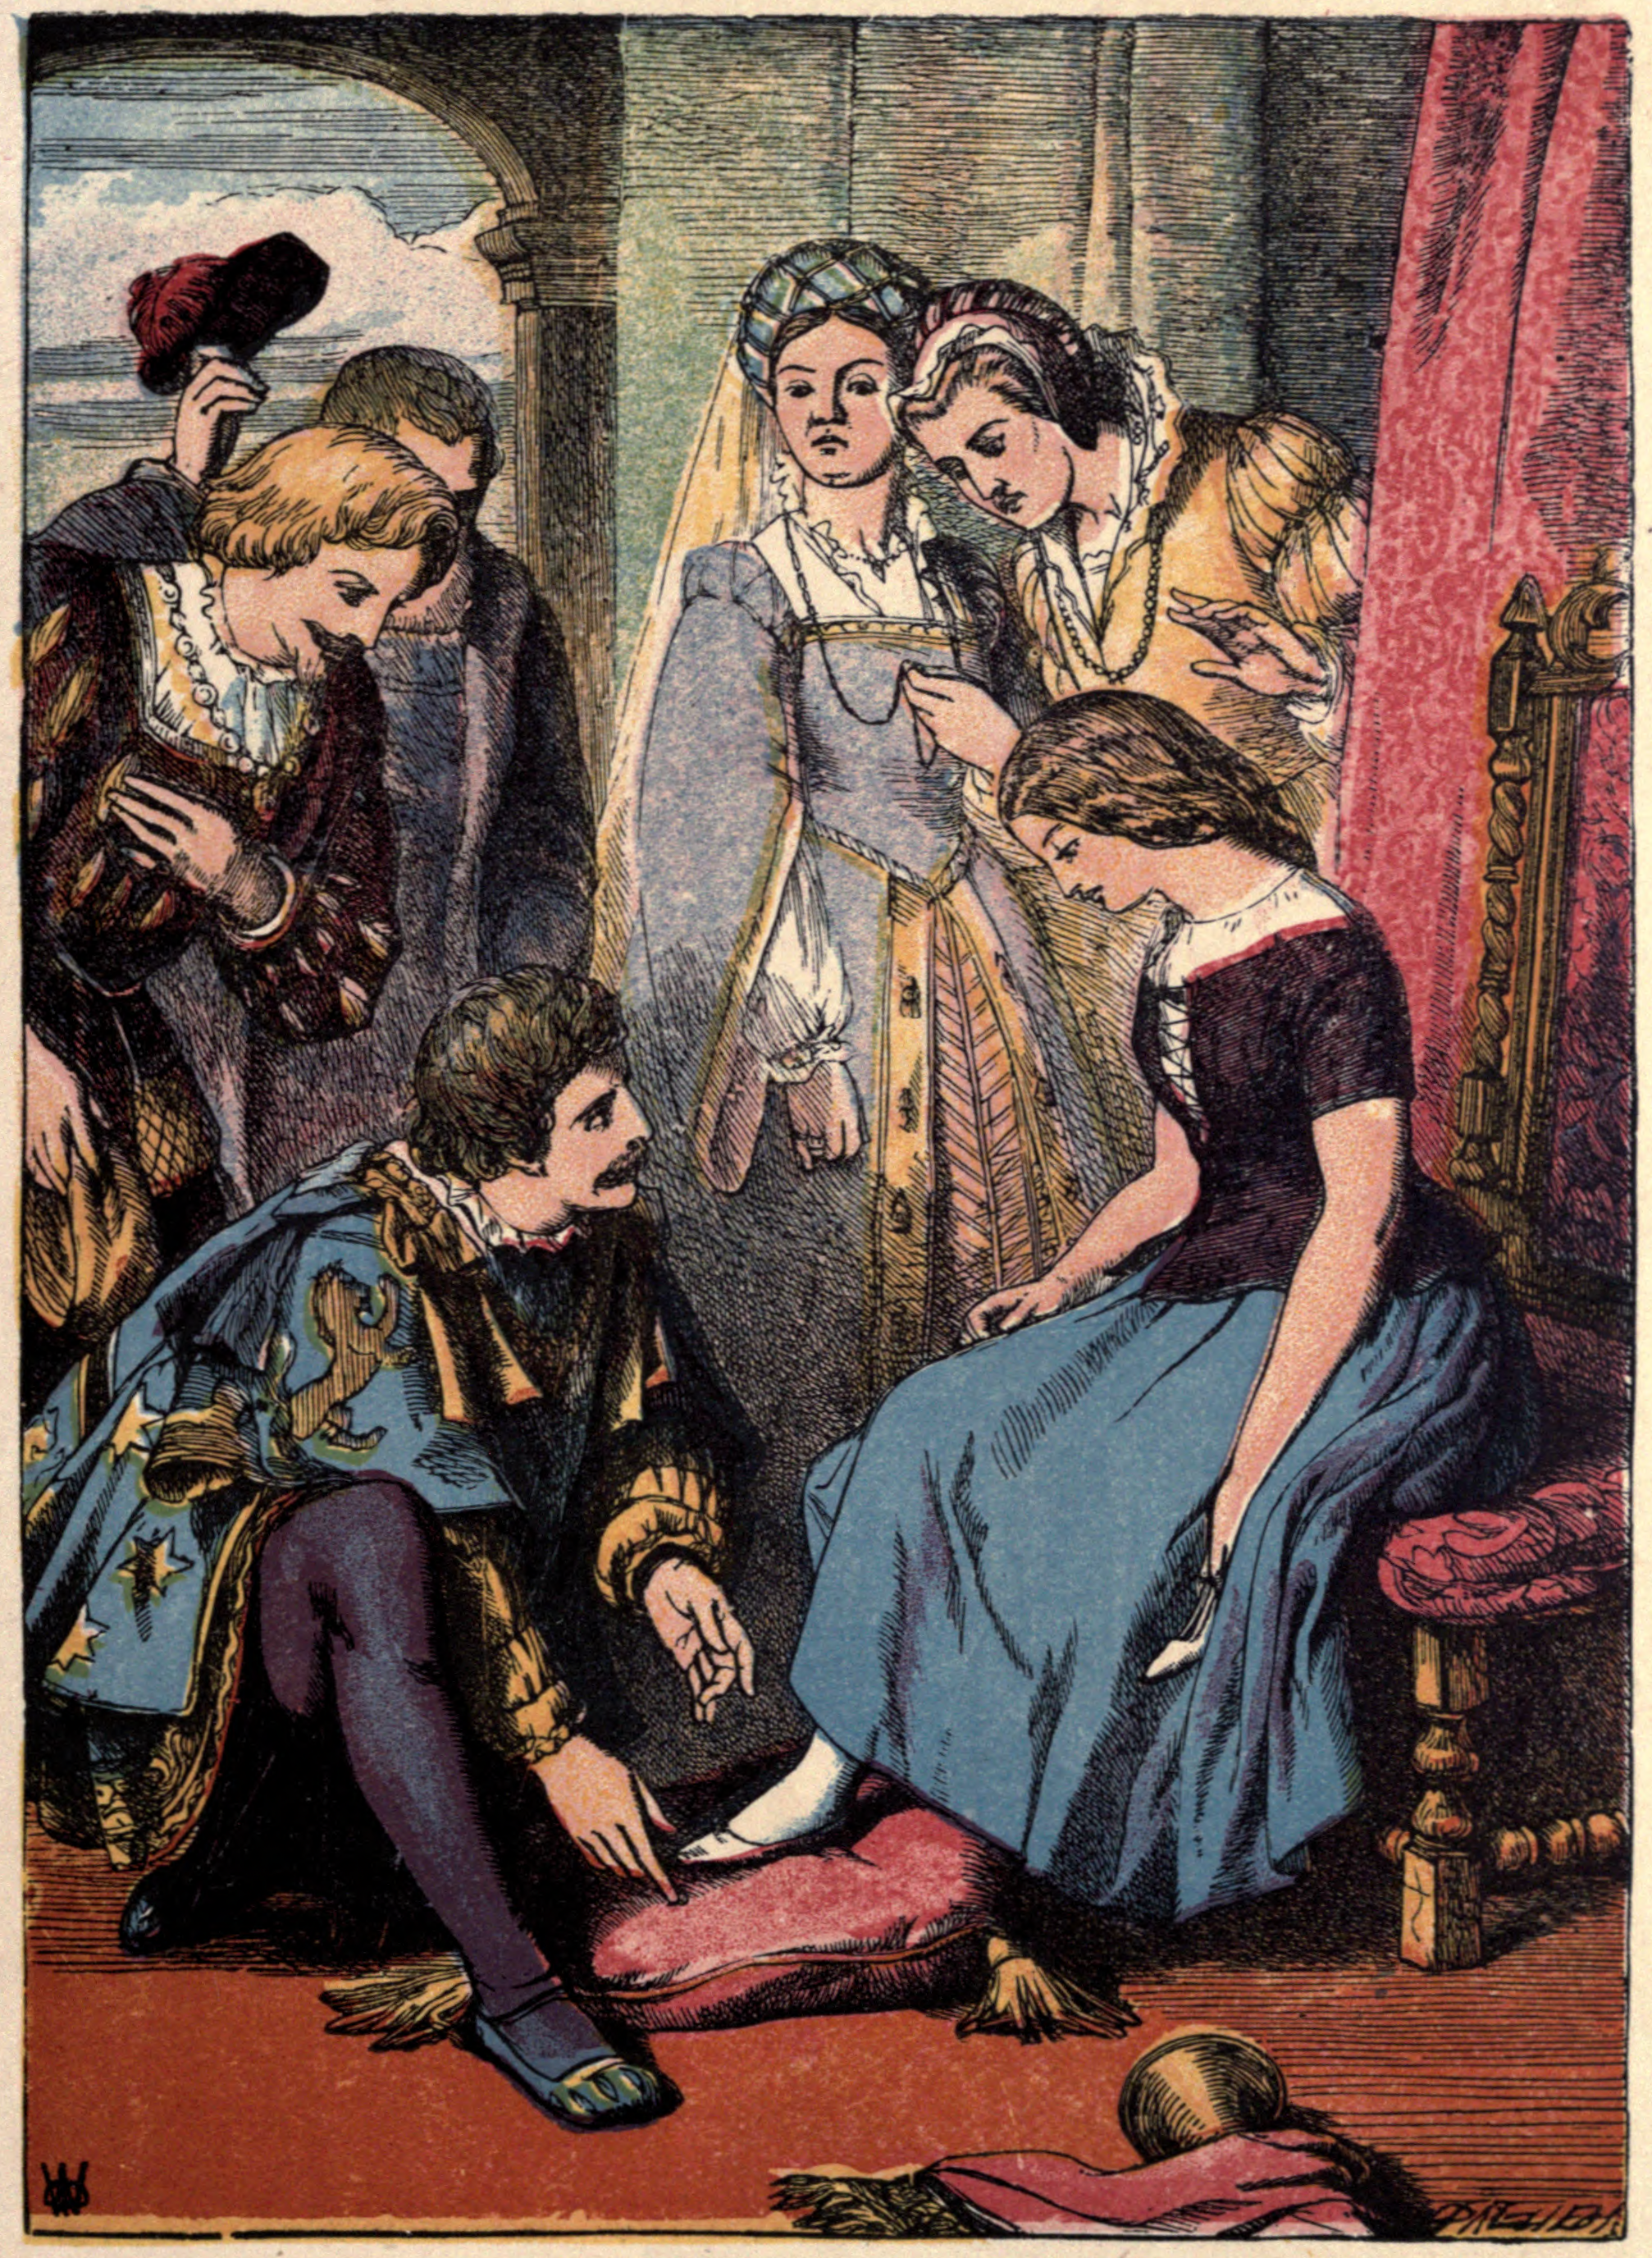 http://upload.wikimedia.org/wikipedia/commons/7/76/Cinderella_1865_%286%29.png